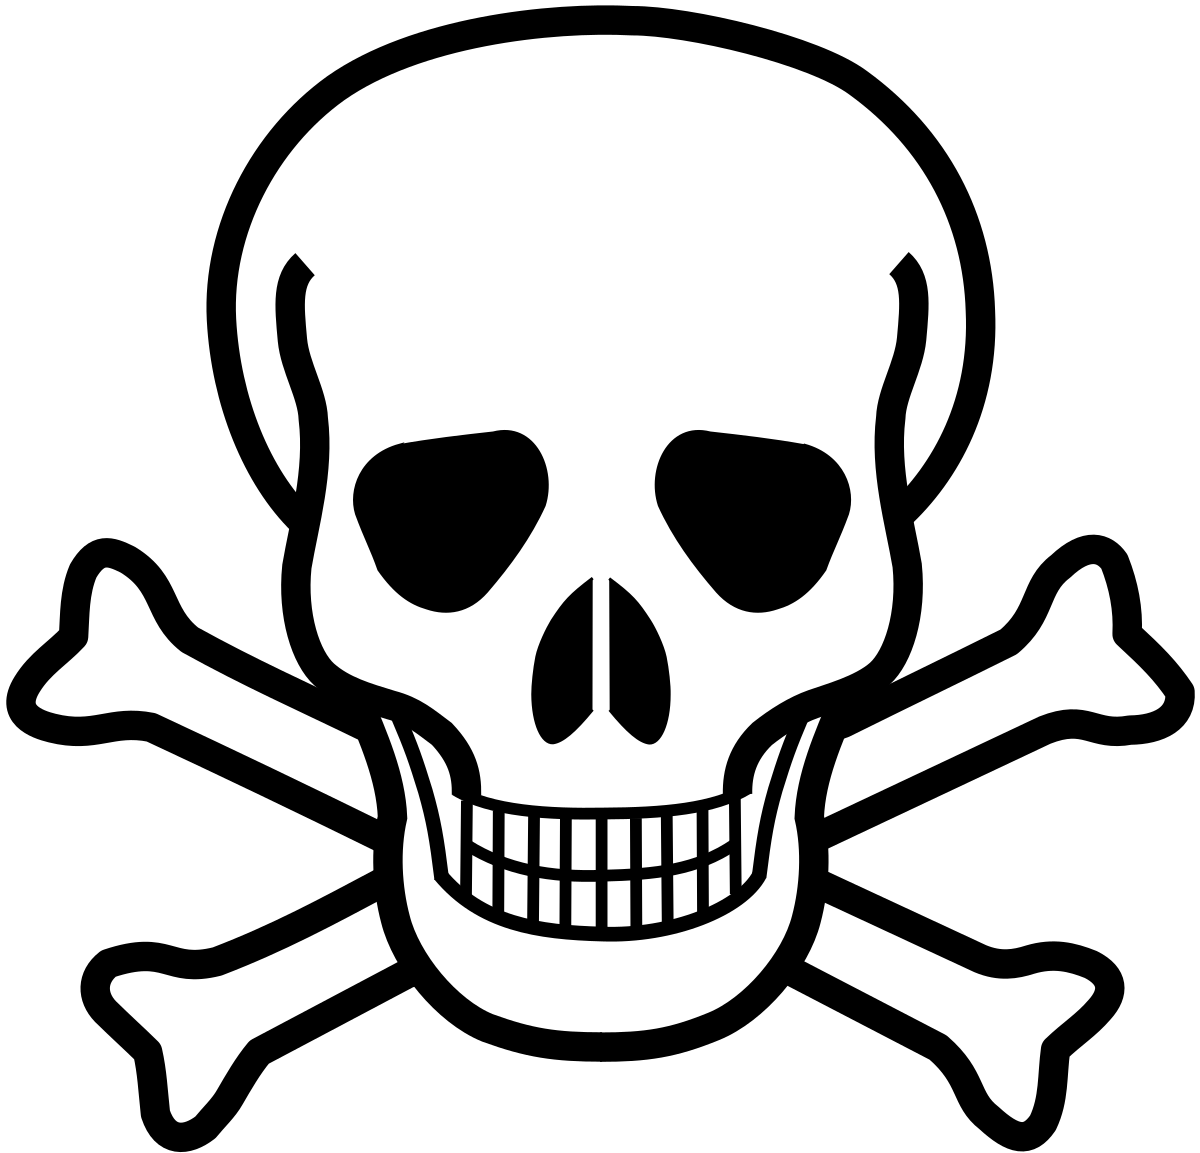 png transparent library Toxicity wikipedia . Disease clipart toxic chemical.